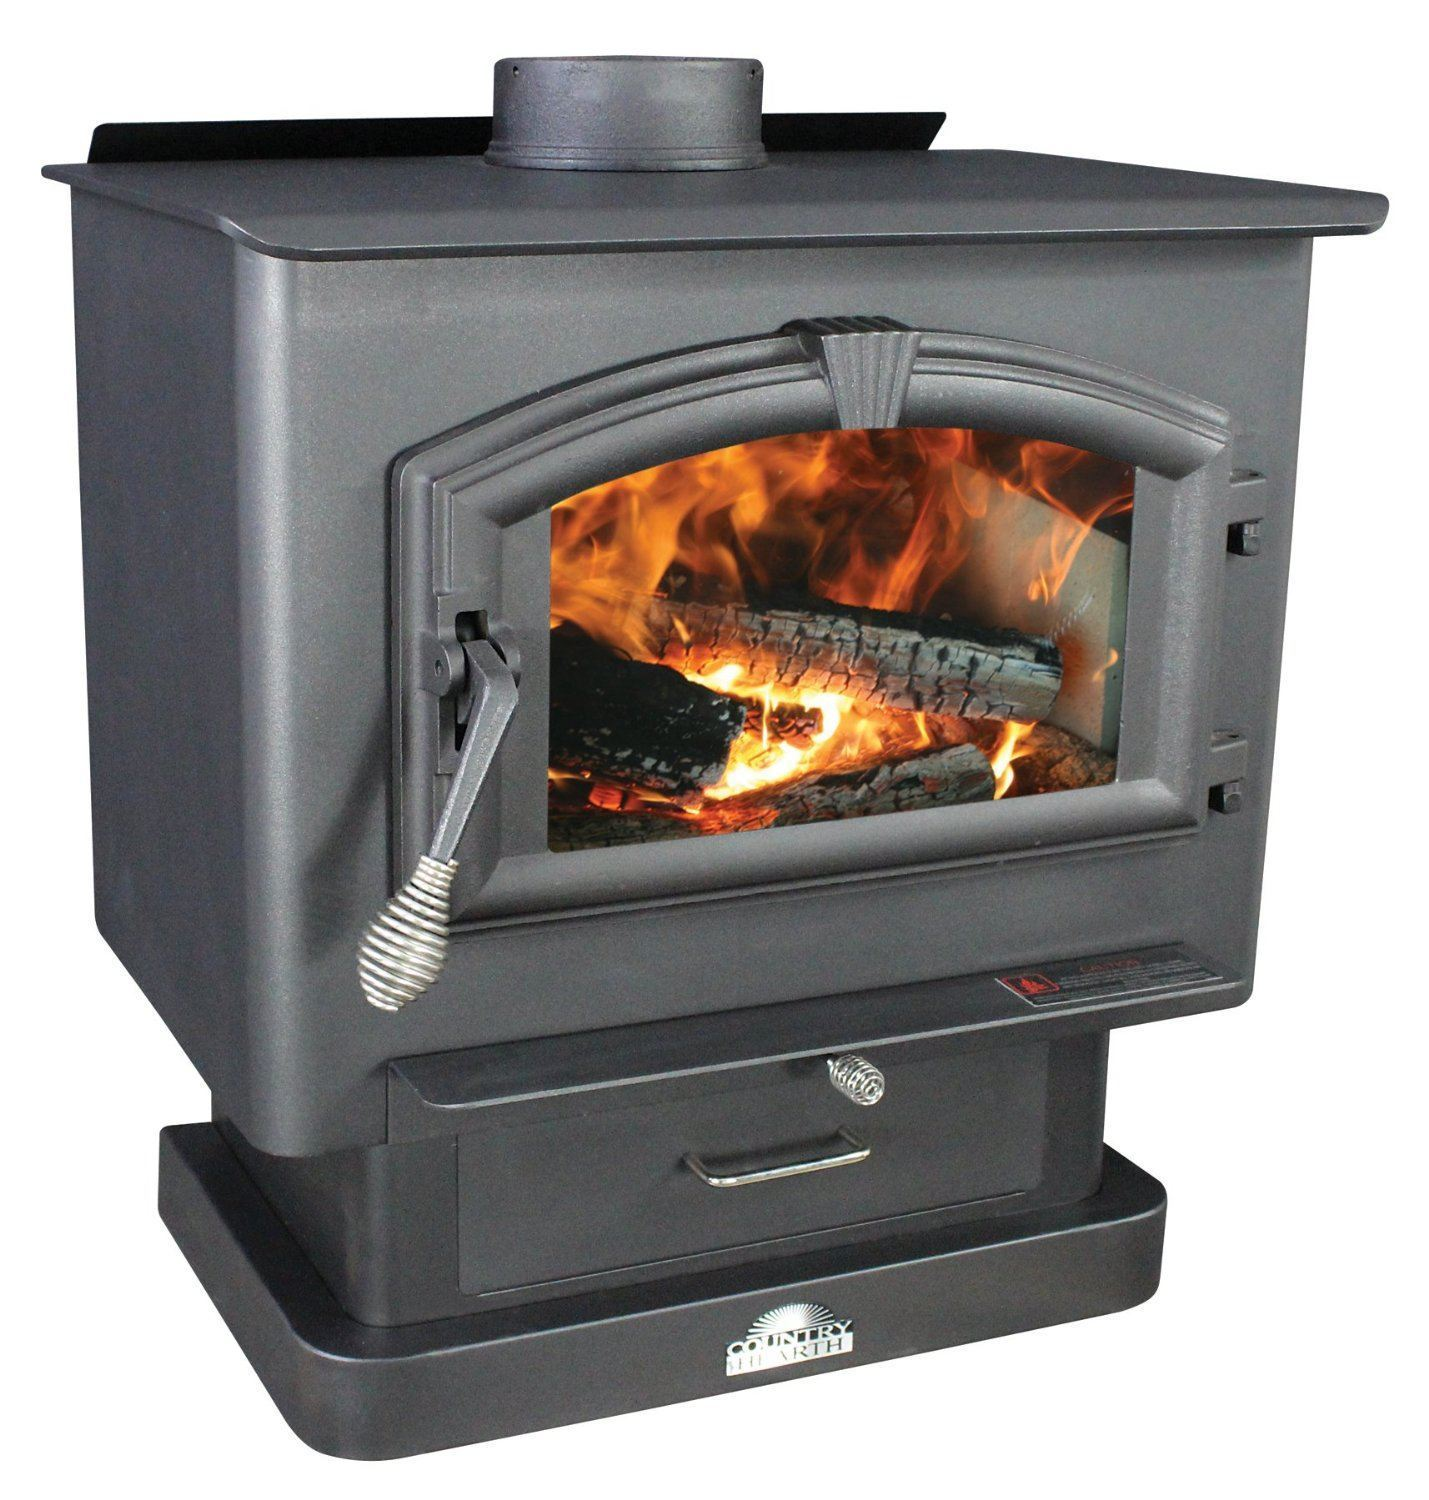 us stove 2000 review